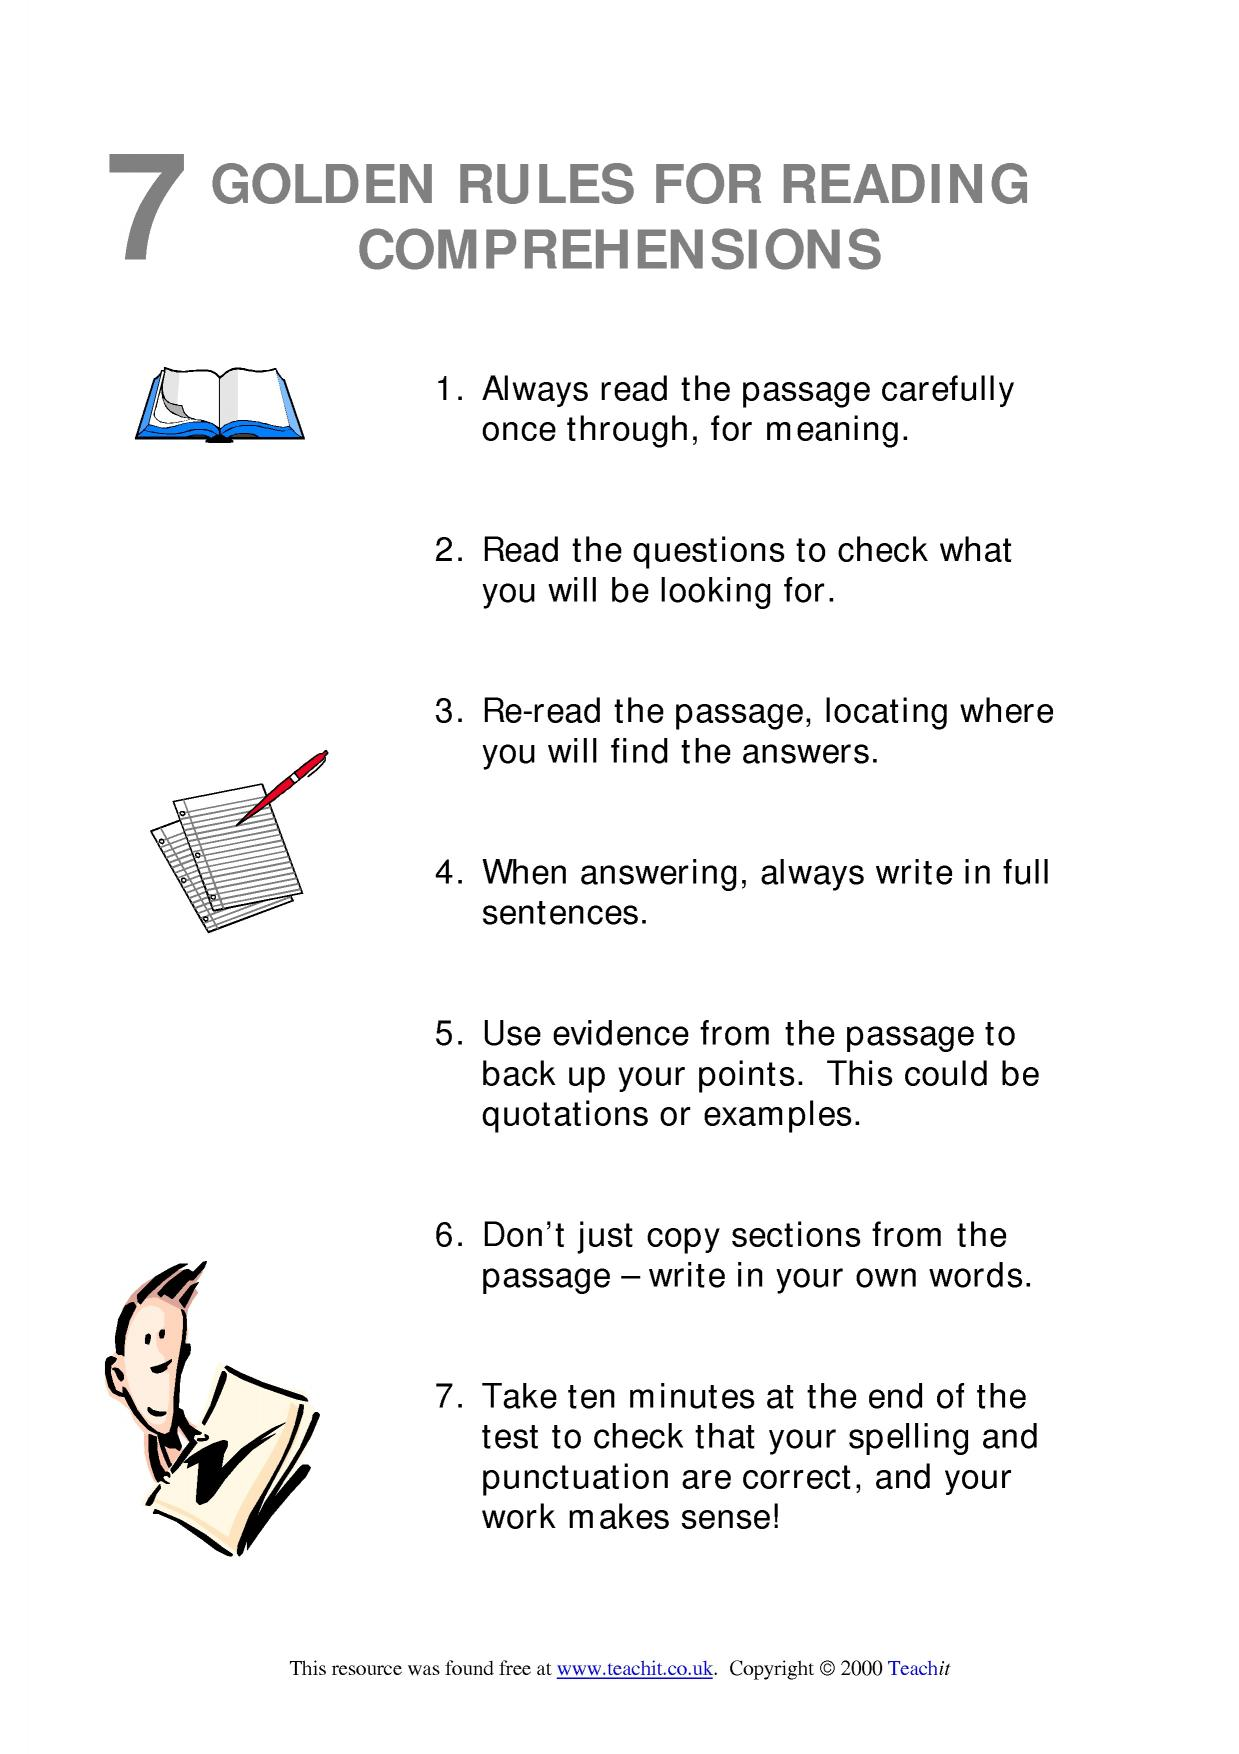 - 7 Golden Rules For Reading Comprehensions